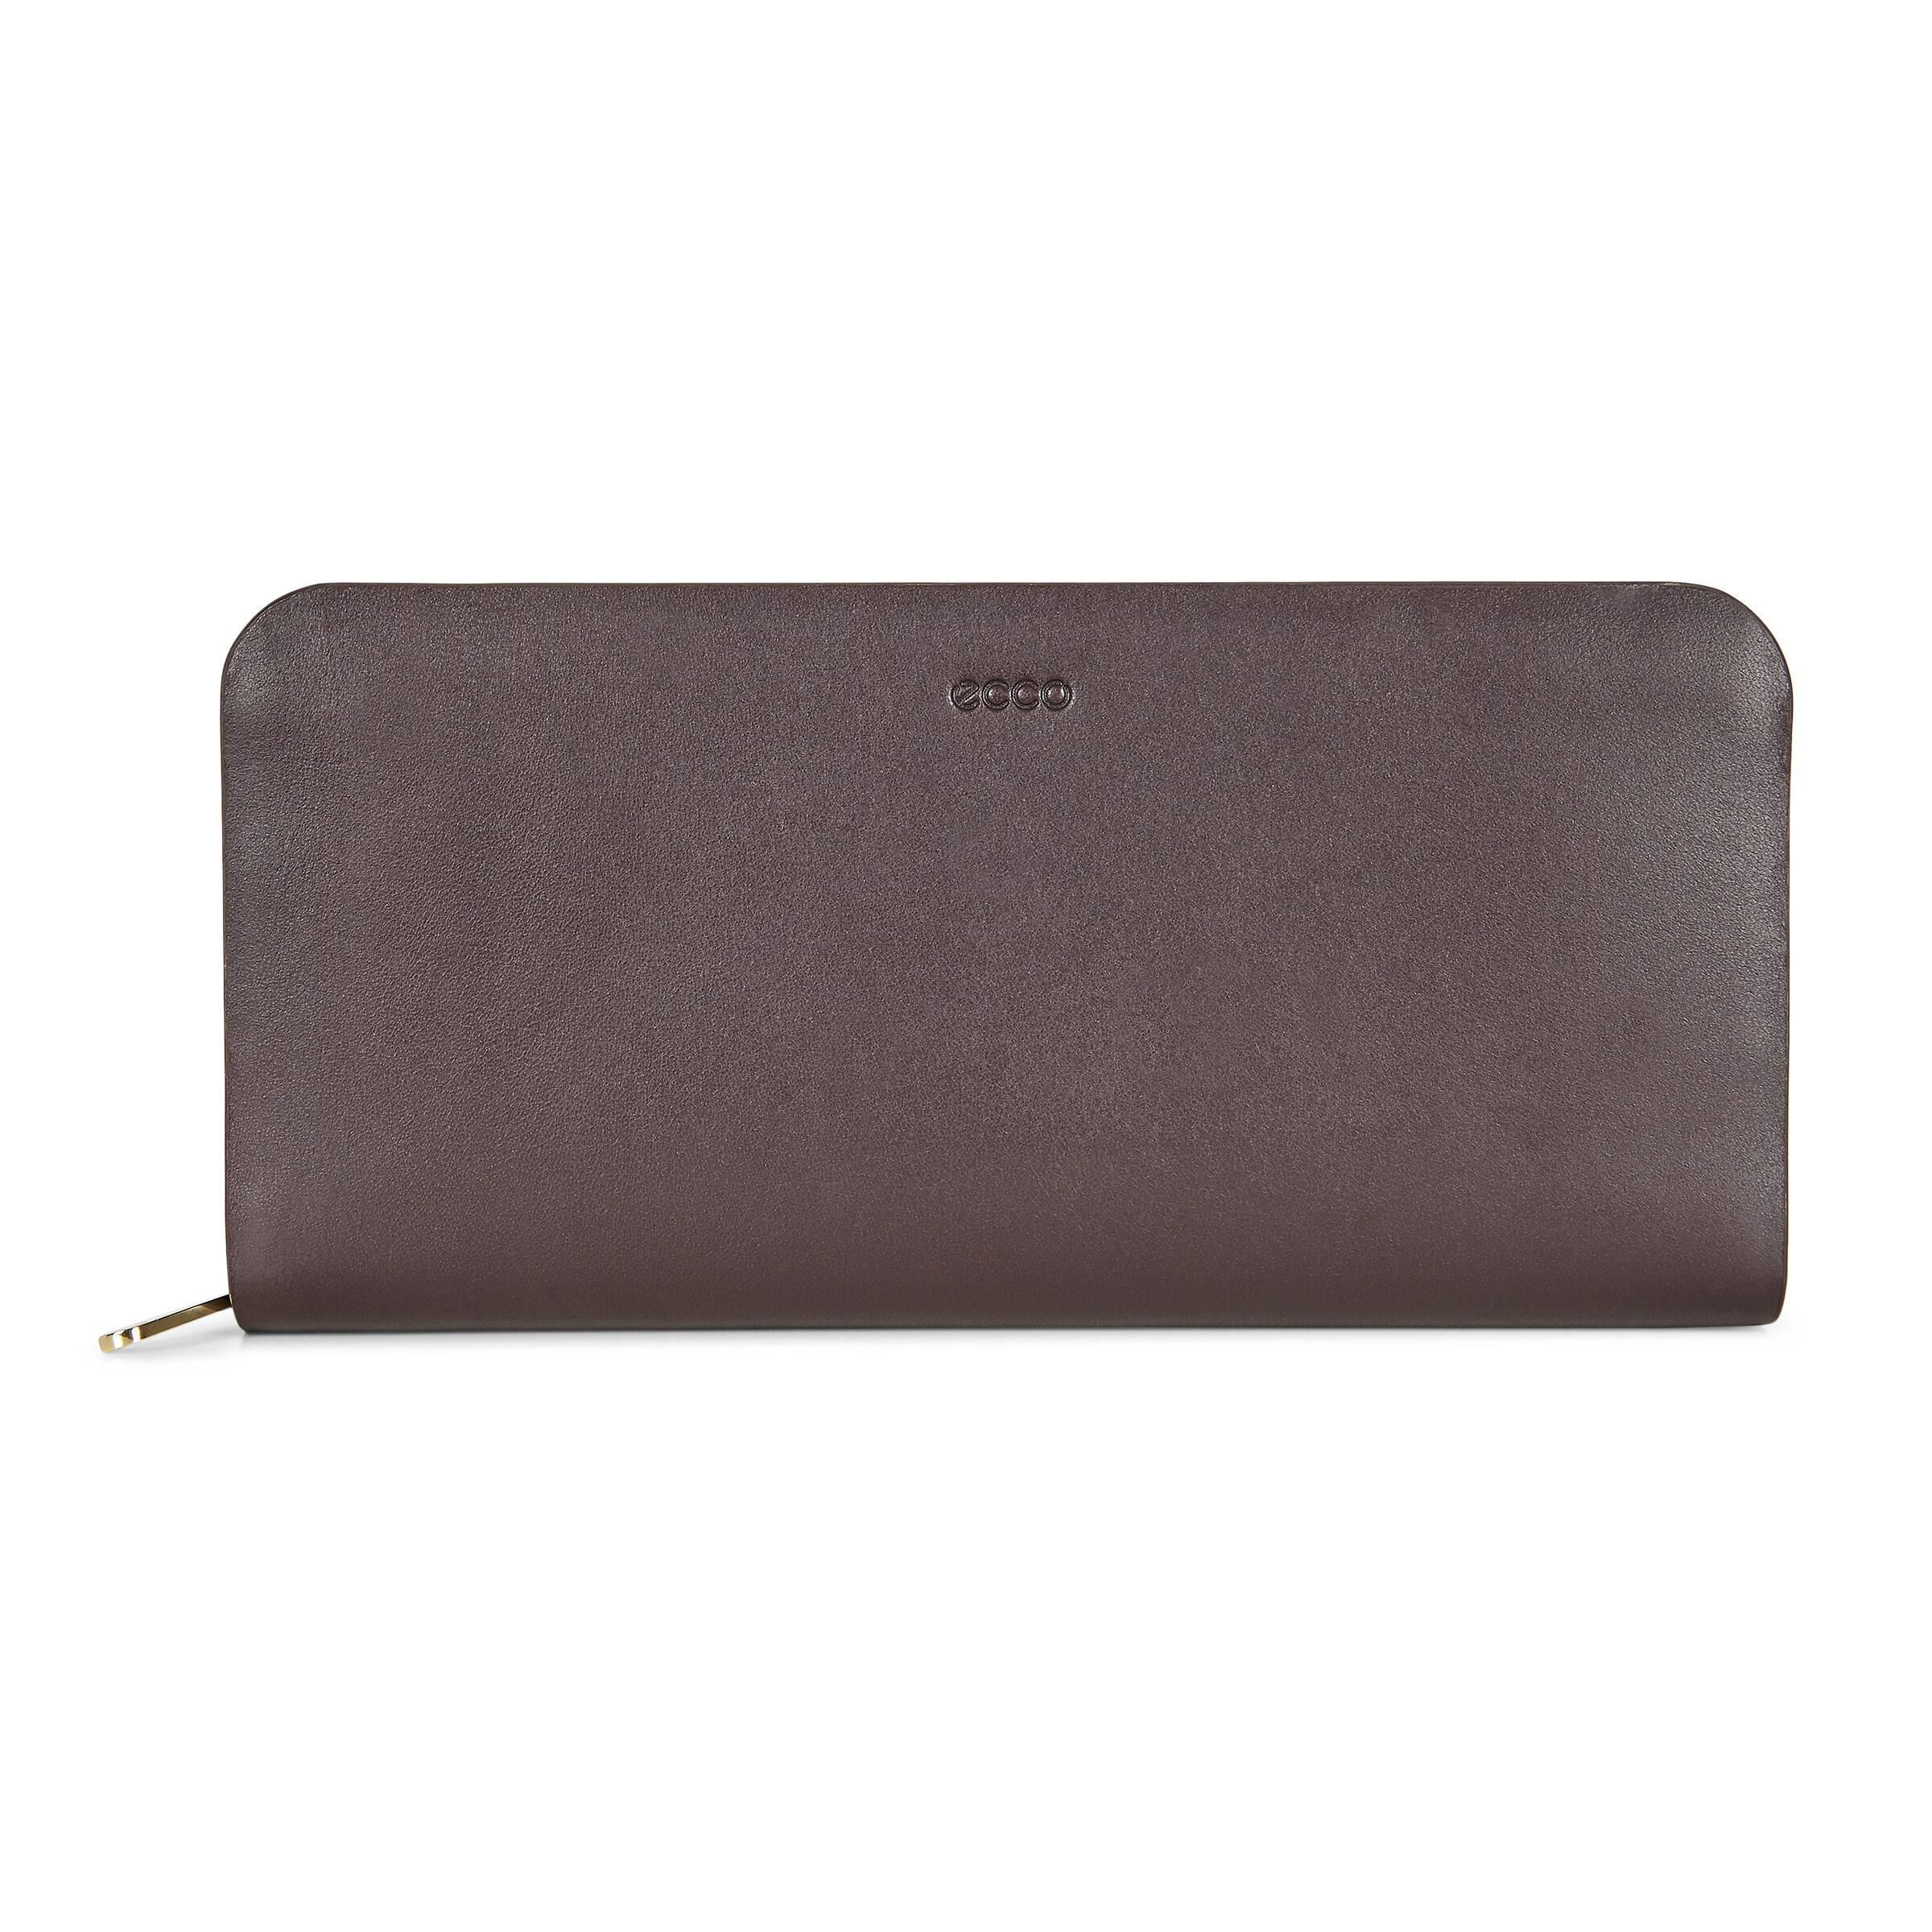 ECCO Ebba Continental Wallet: One Size - Shale